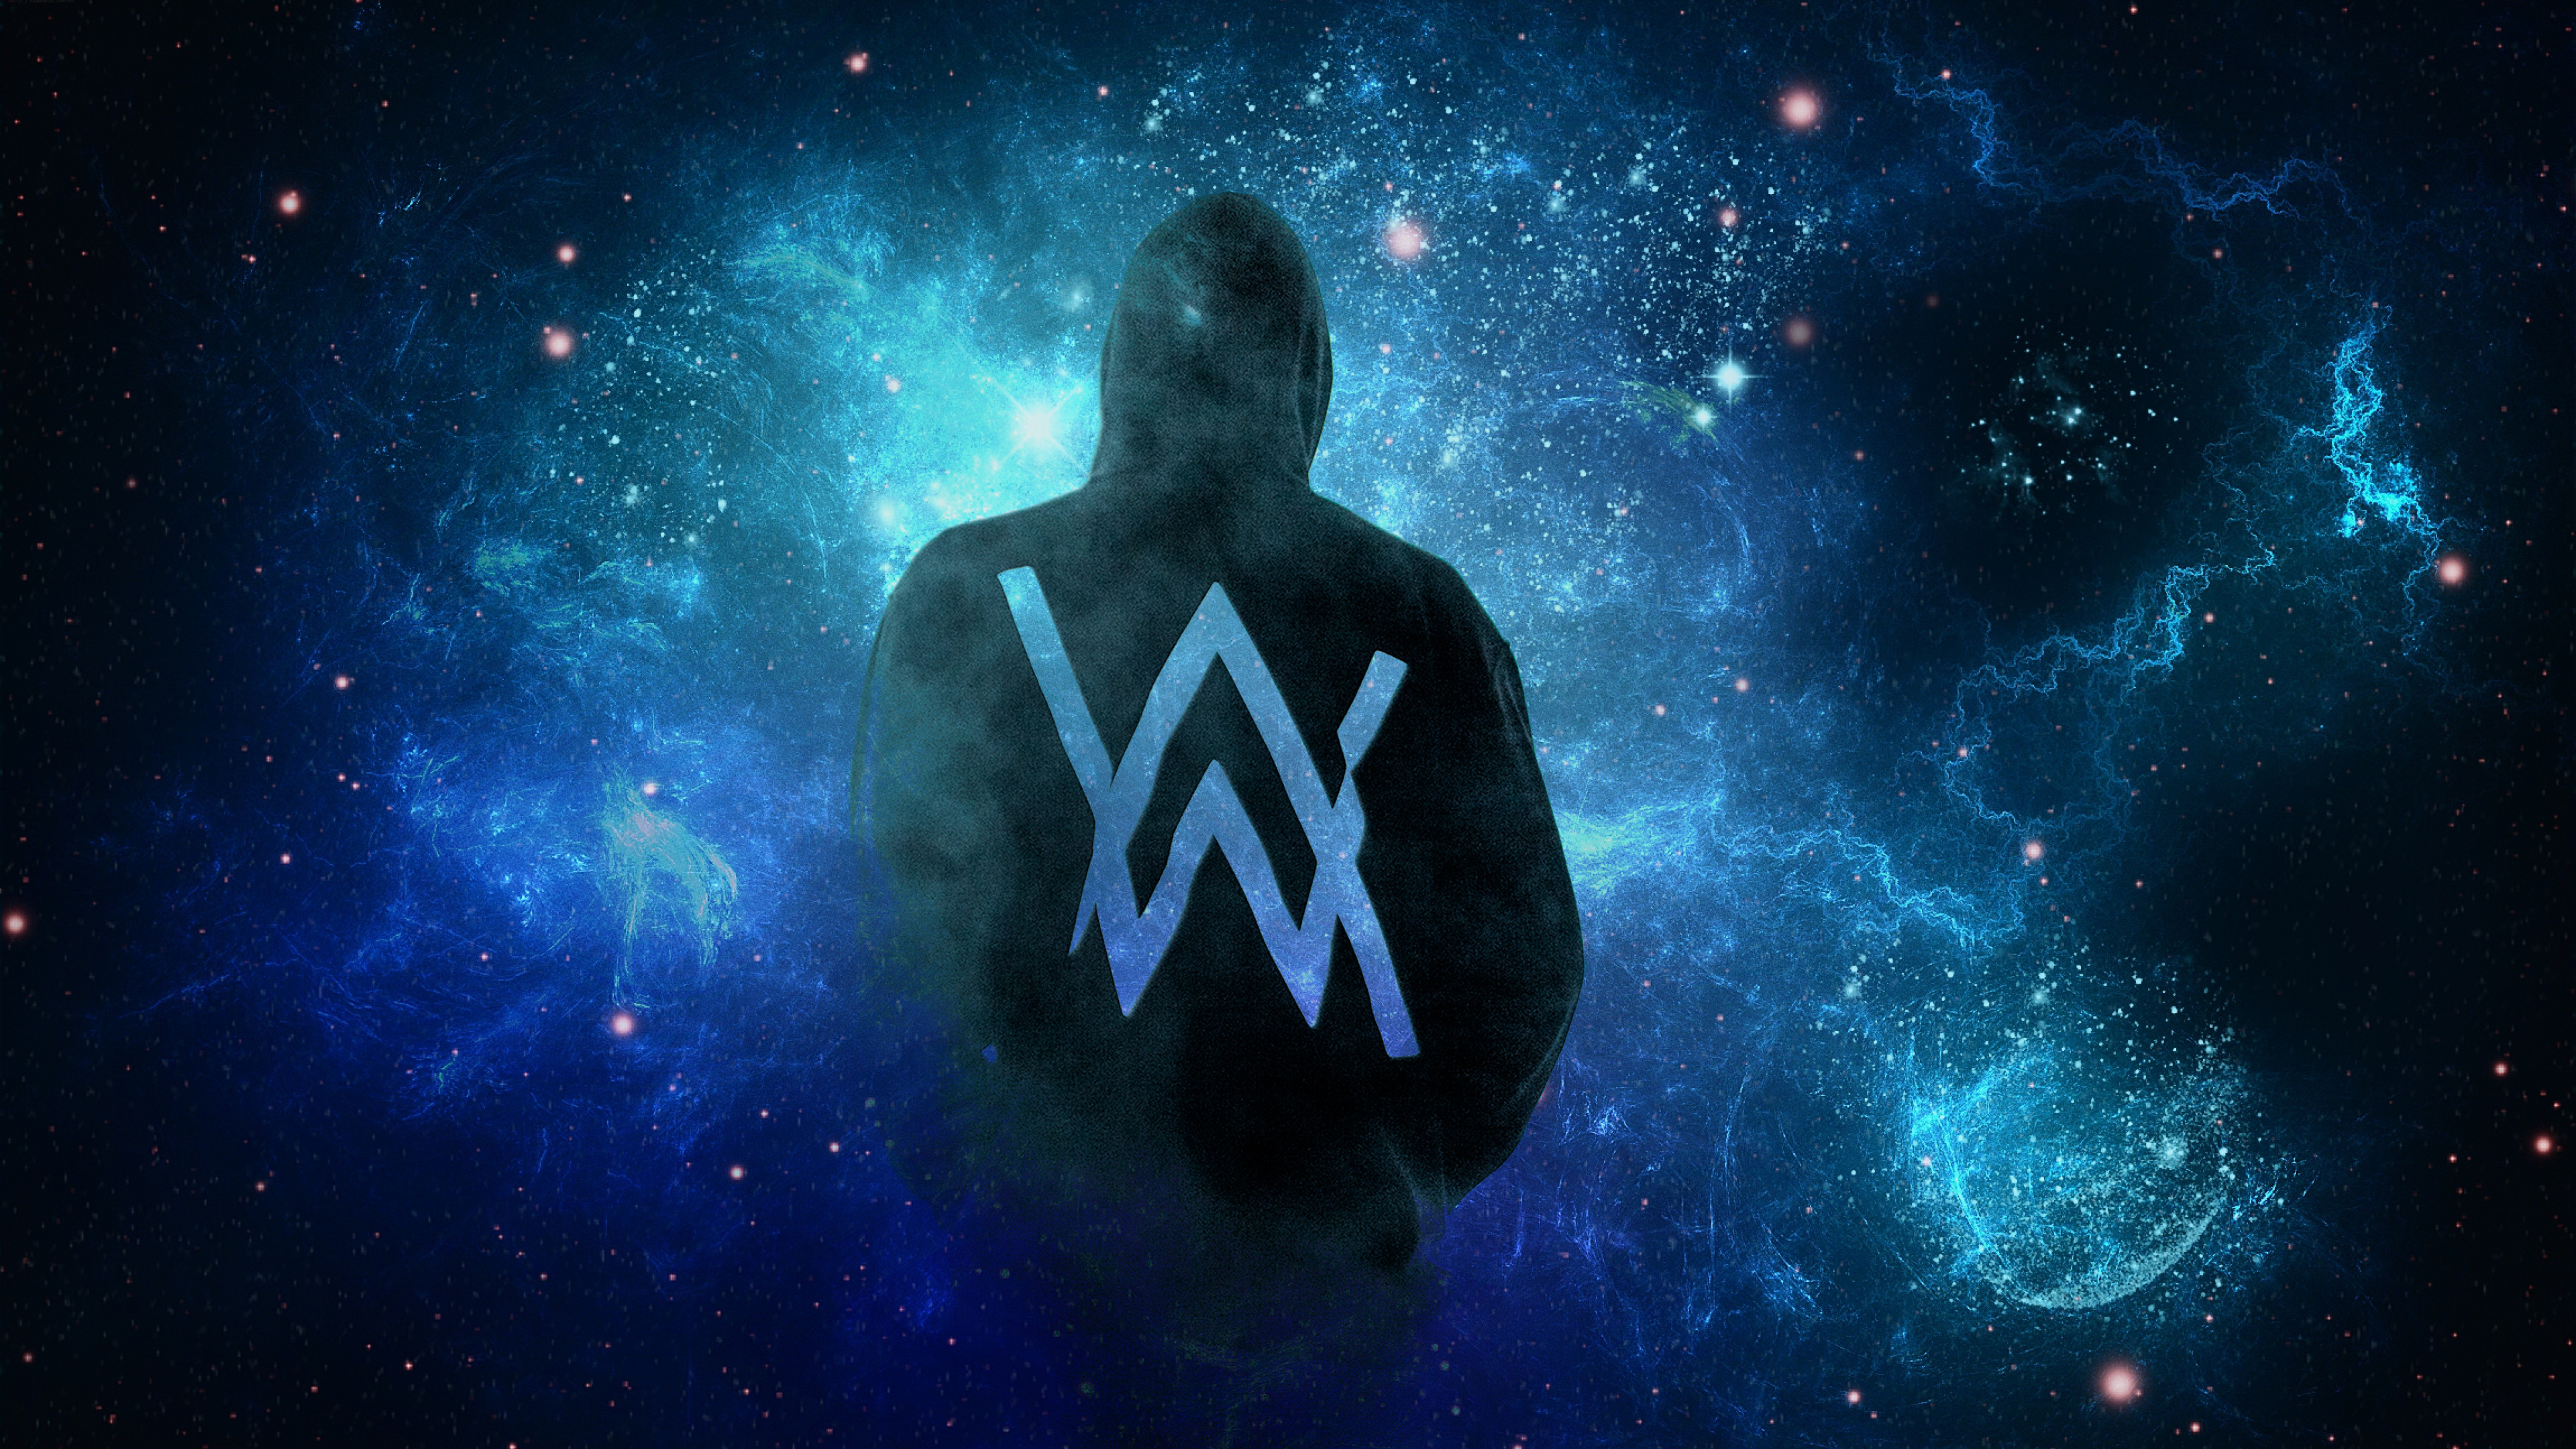 Alan Walker Wallpapers HD Full HD Pictures 3840x2160